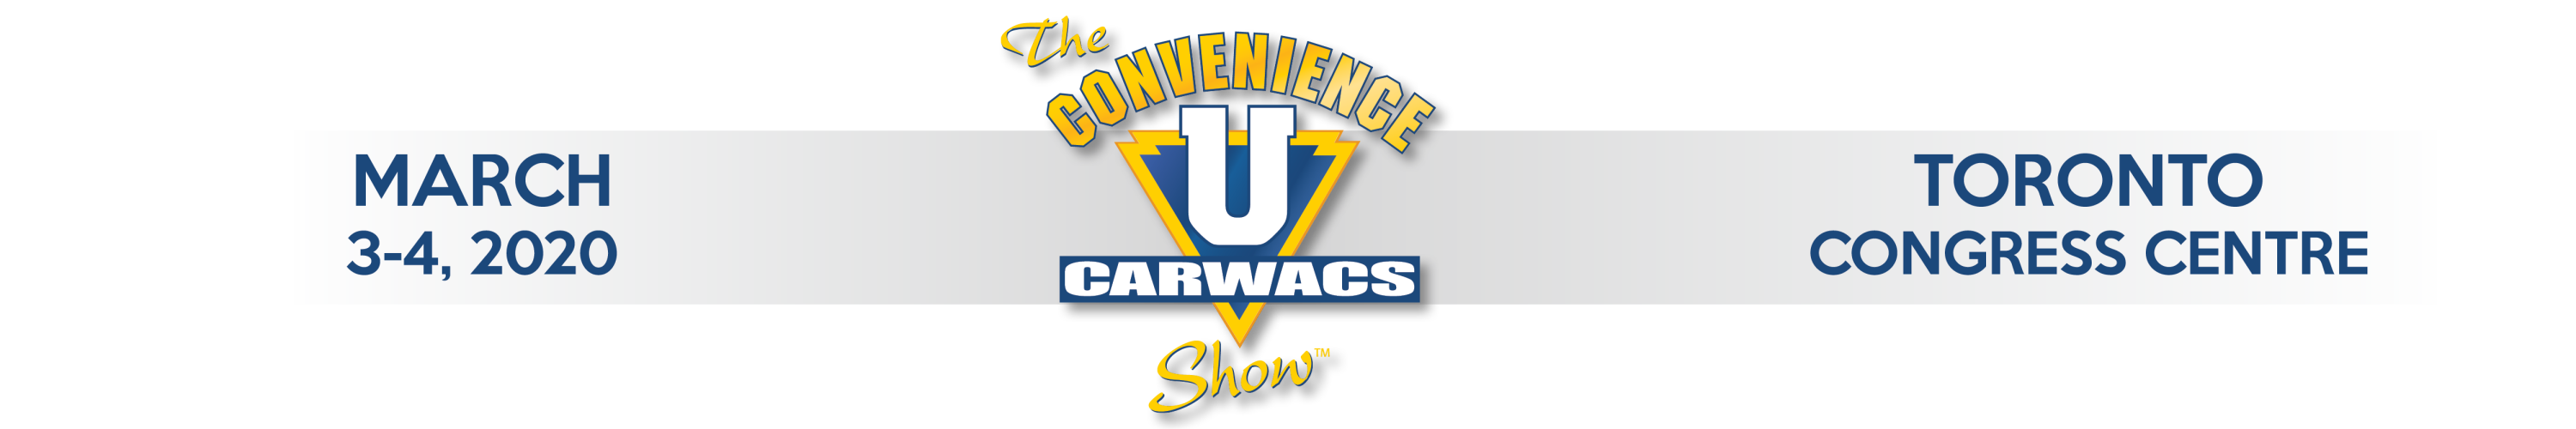 The Convenience U CARWACS Show Toronto 2020